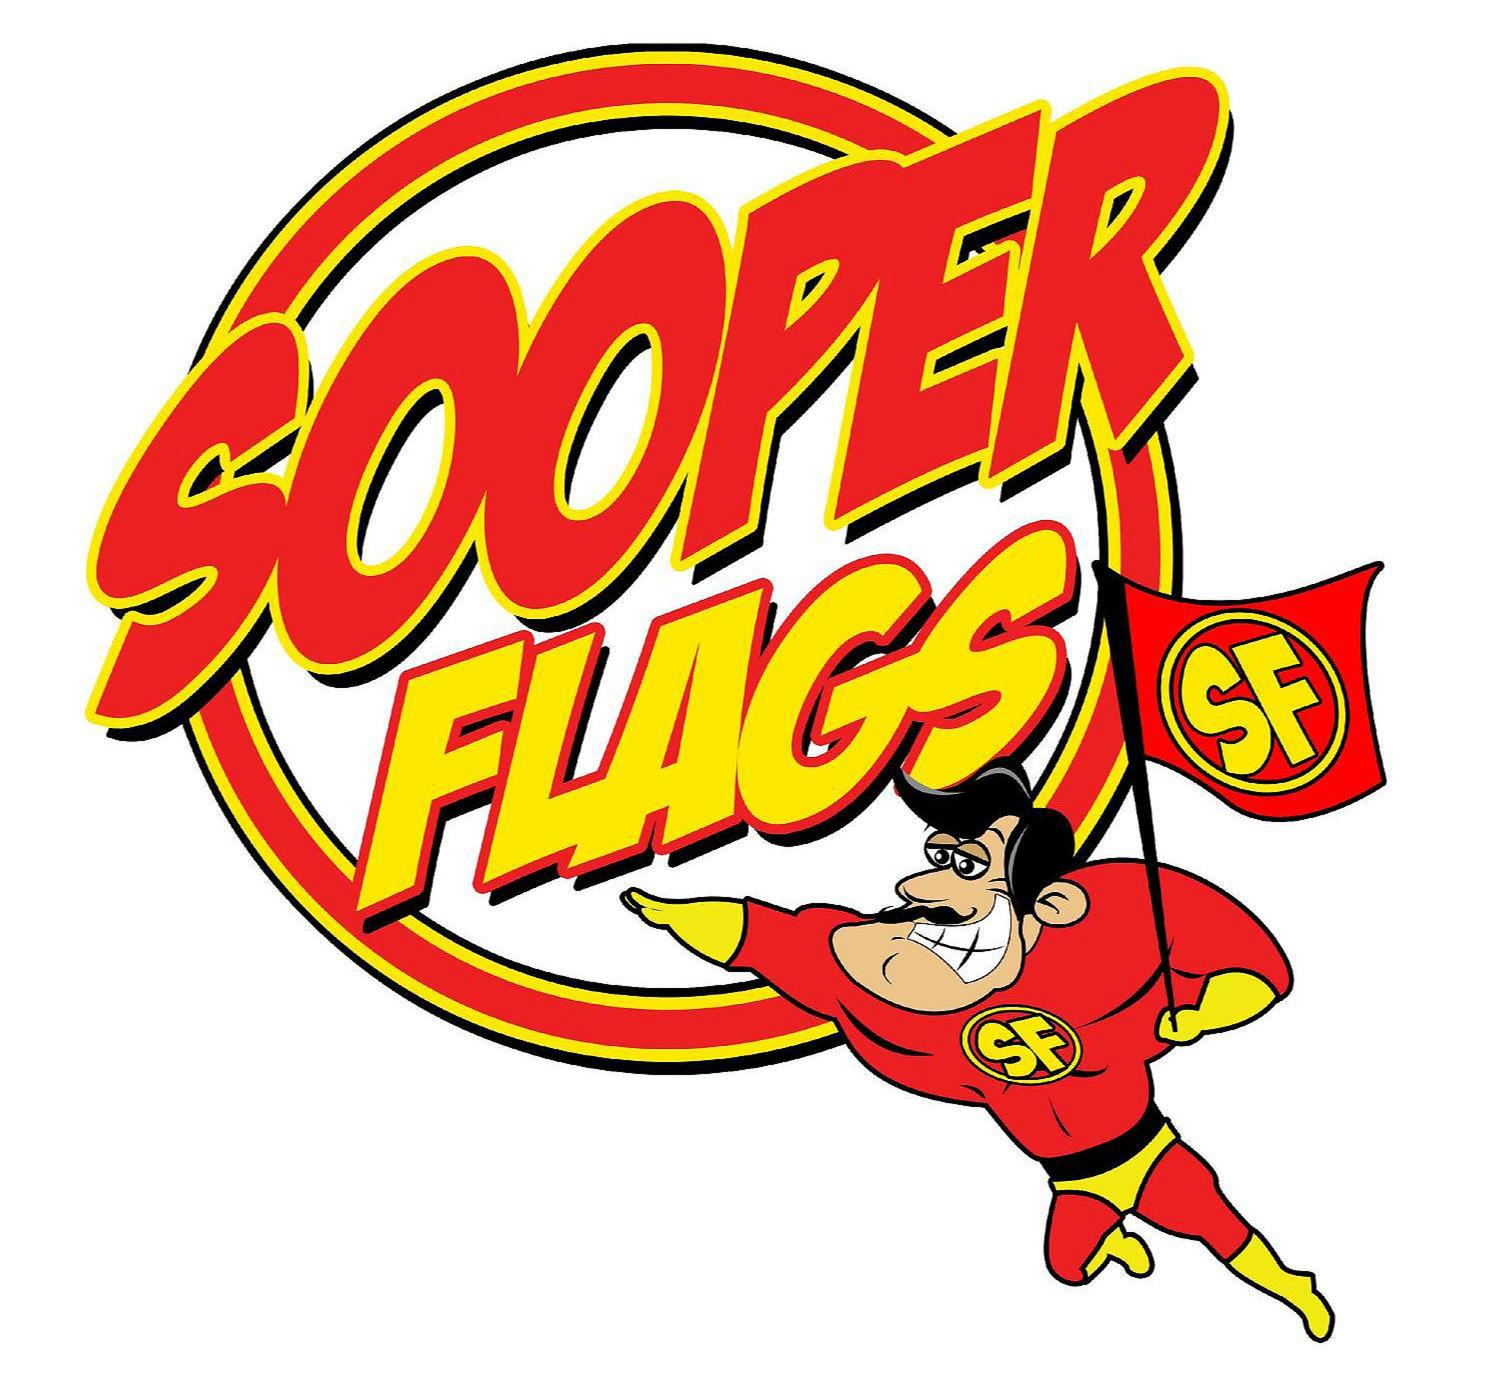 Sooper Flags / Speedy Flags